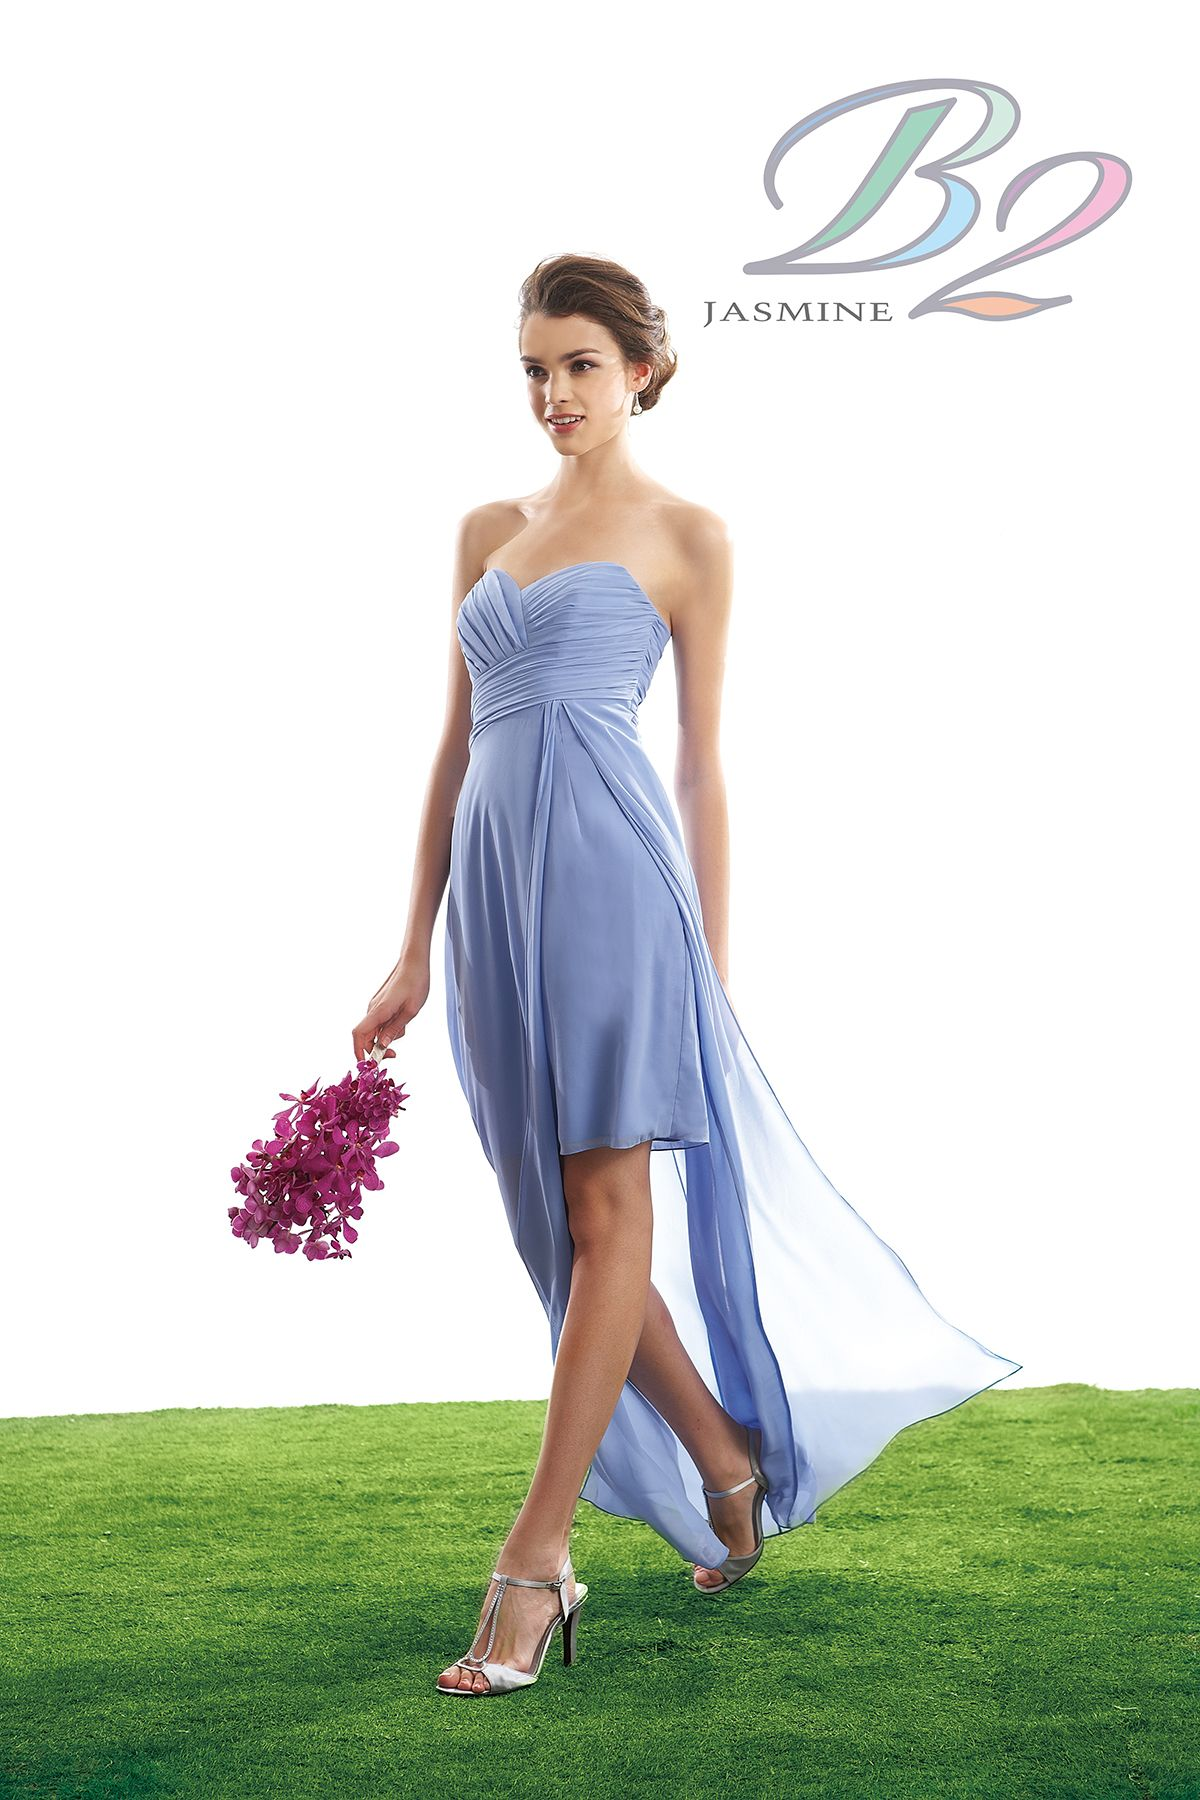 Pin by beresford bridal outlet on b2 bridesmaids pinterest explore ruffles bridesmaid dresses and more ombrellifo Choice Image